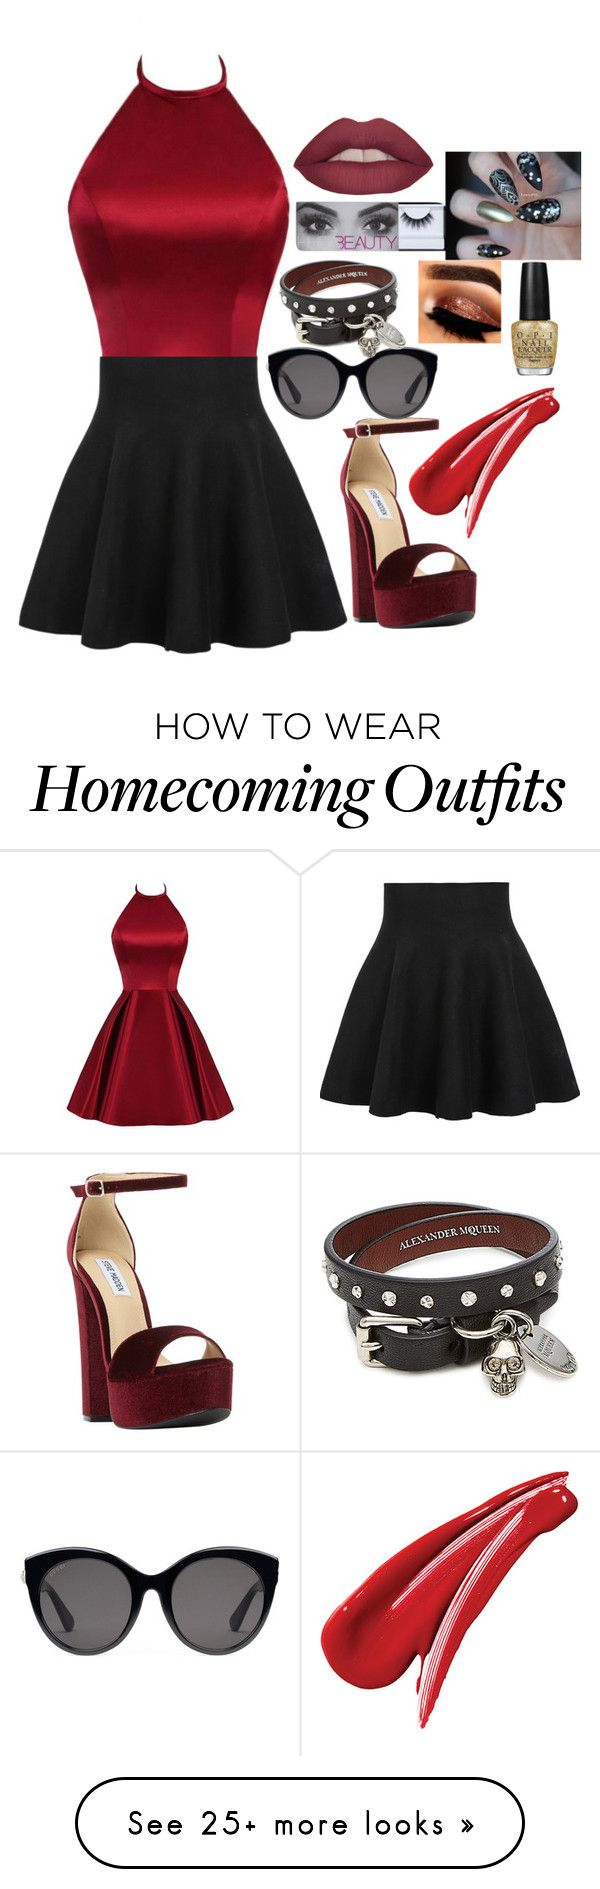 """Untitled #505"" by kajadelic on Polyvore featuring Steve Madden, Gucci, Alexander McQueen and OPI"